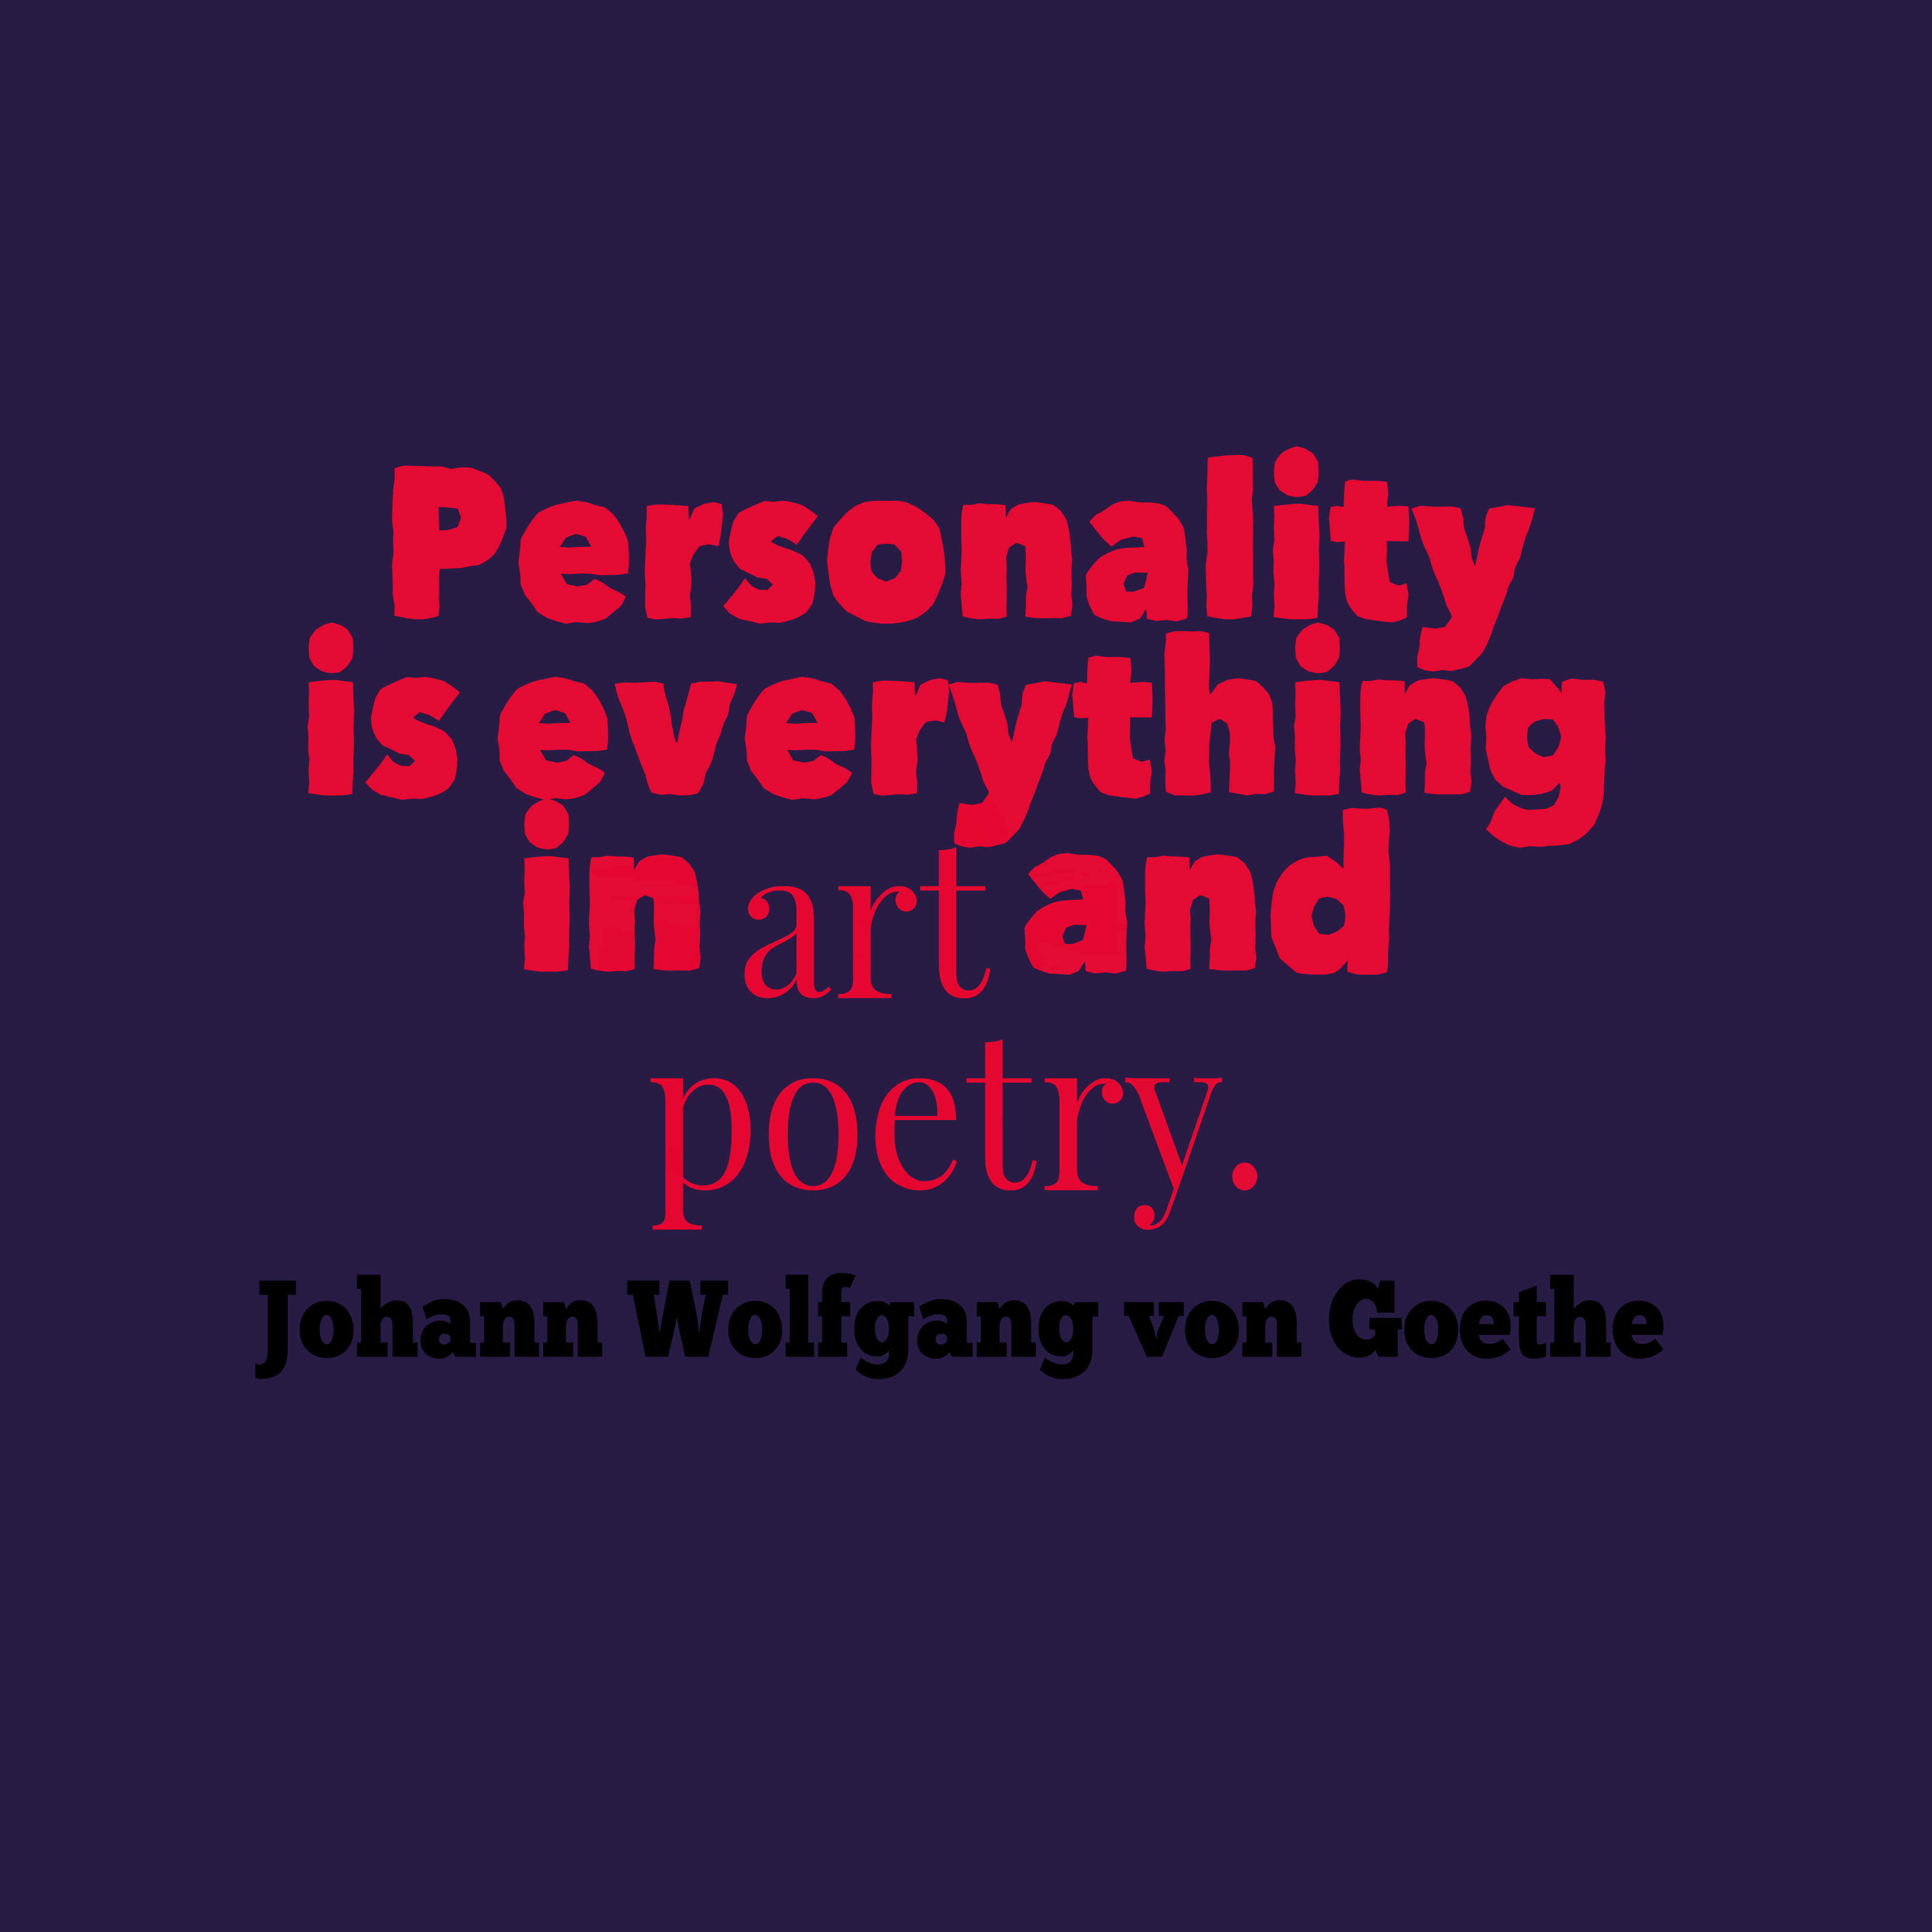 Quotes image of Personality is everything in art and poetry.